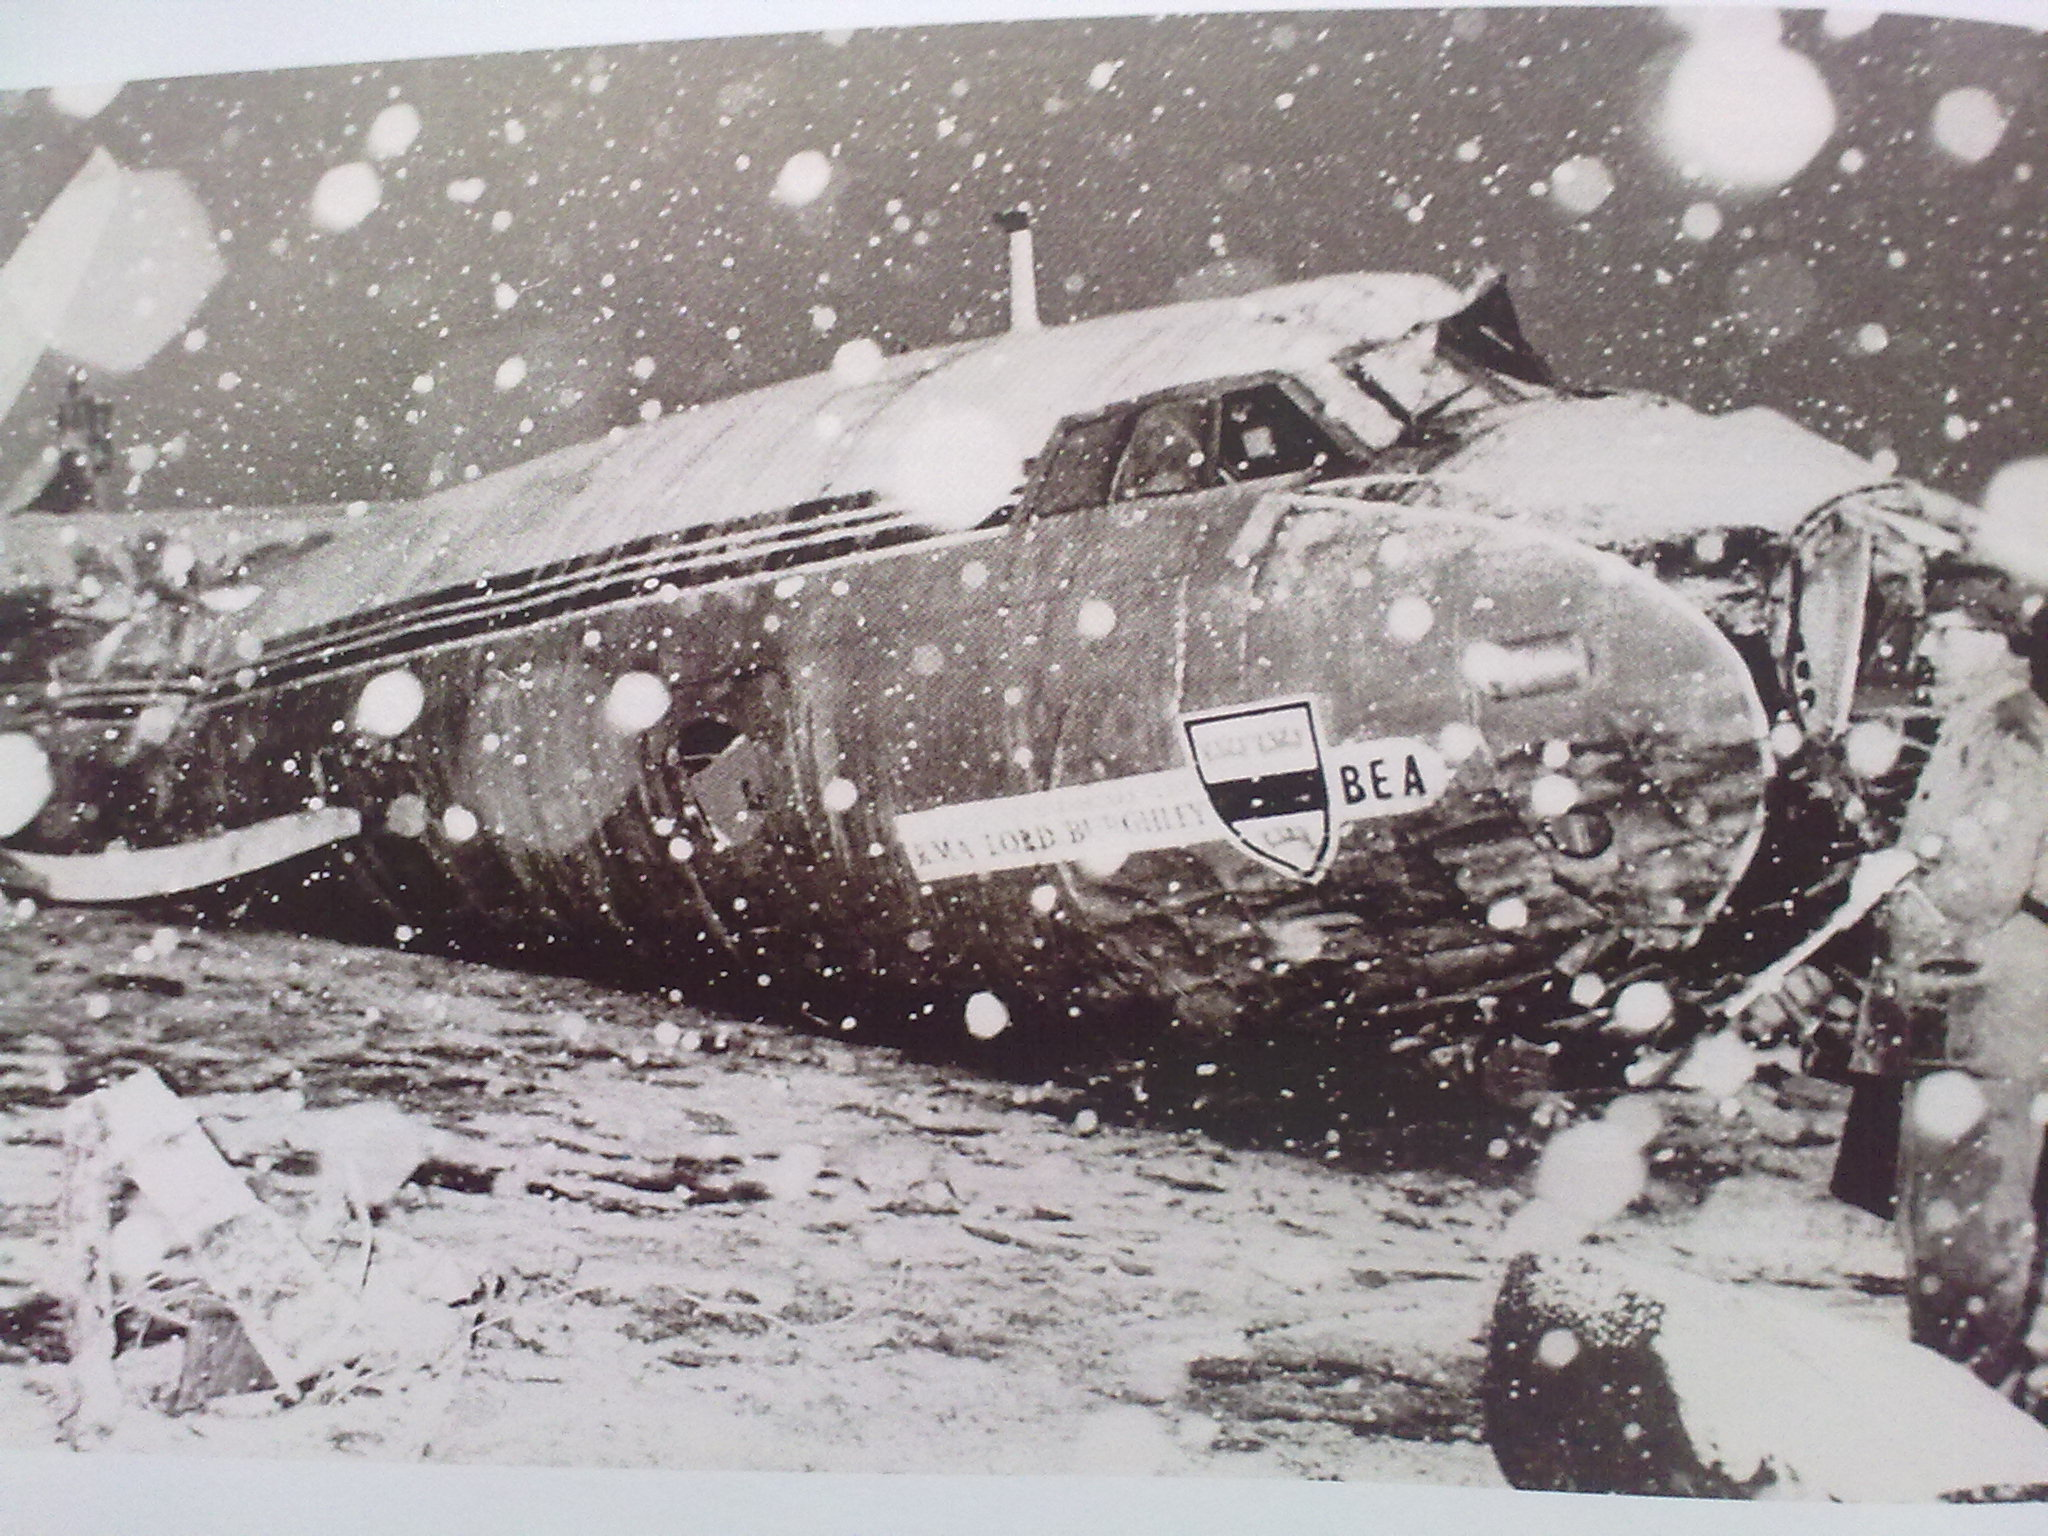 the crash p80 alex murphy The Munich Air Disaster